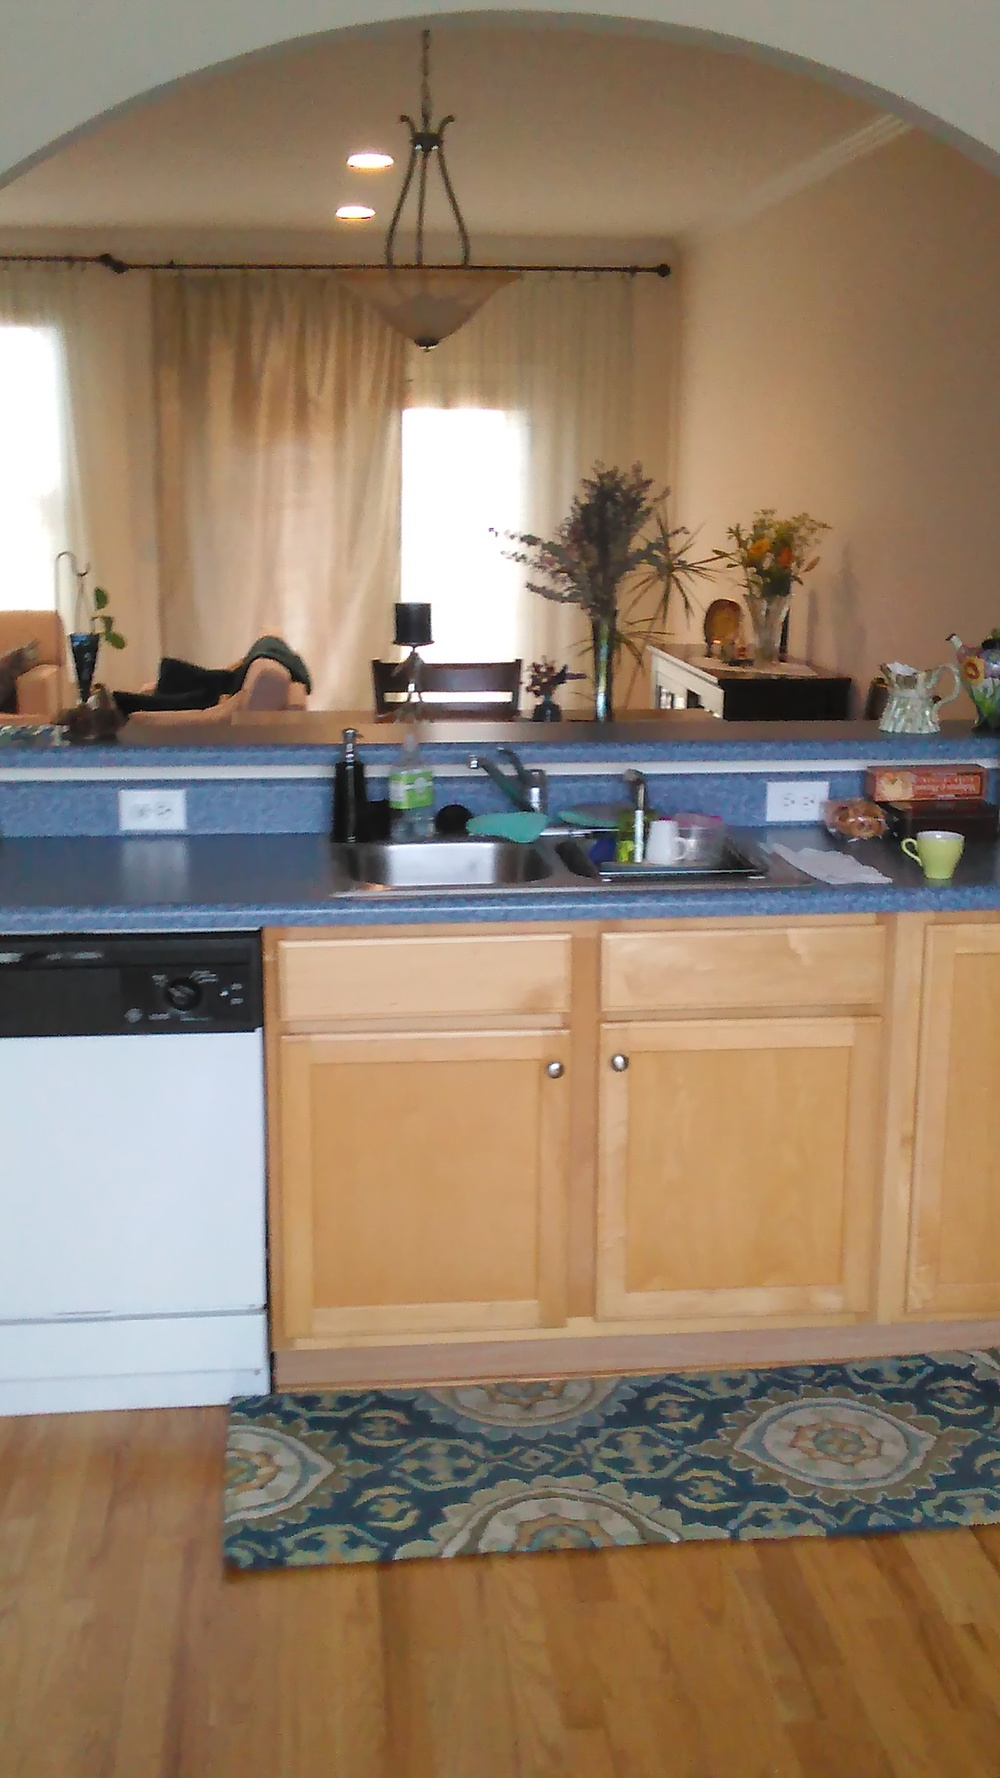 Copperline Drive, 527 - Kitchen looking into the LR.jpg